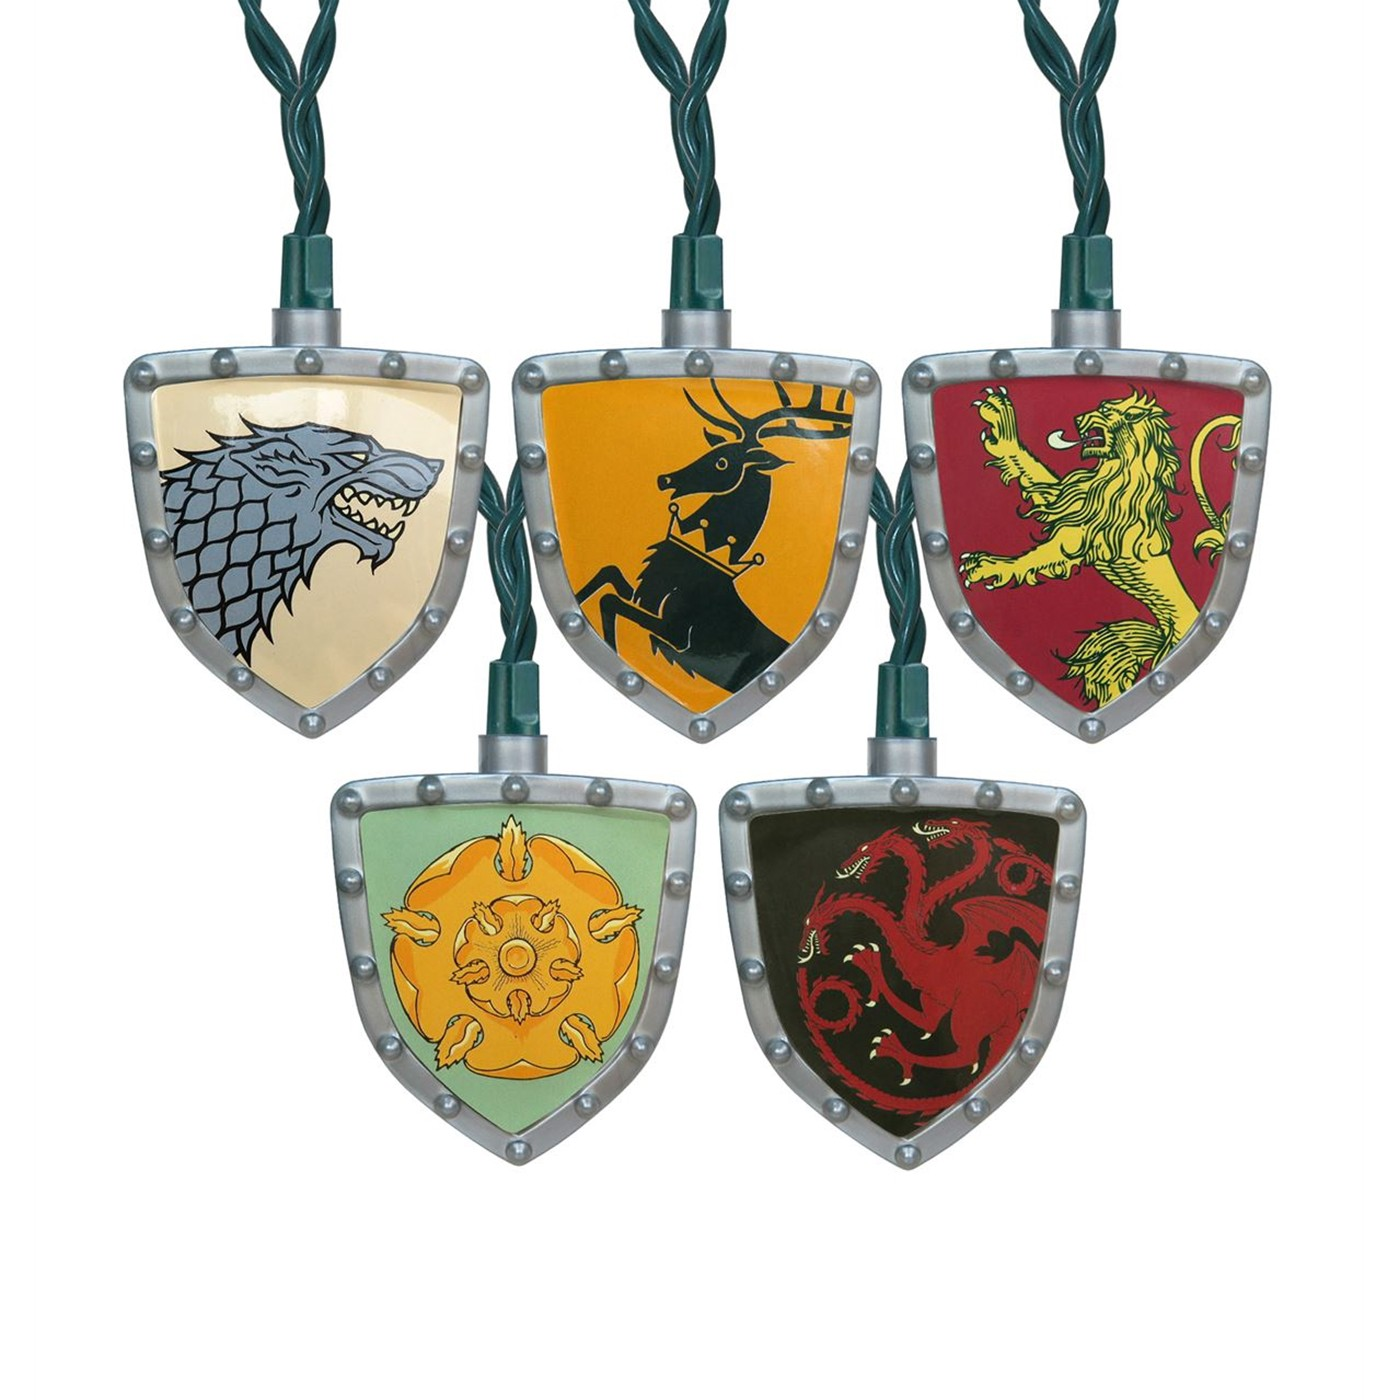 Decorazioni natalizie Il trono di Spade (Game of Thrones)